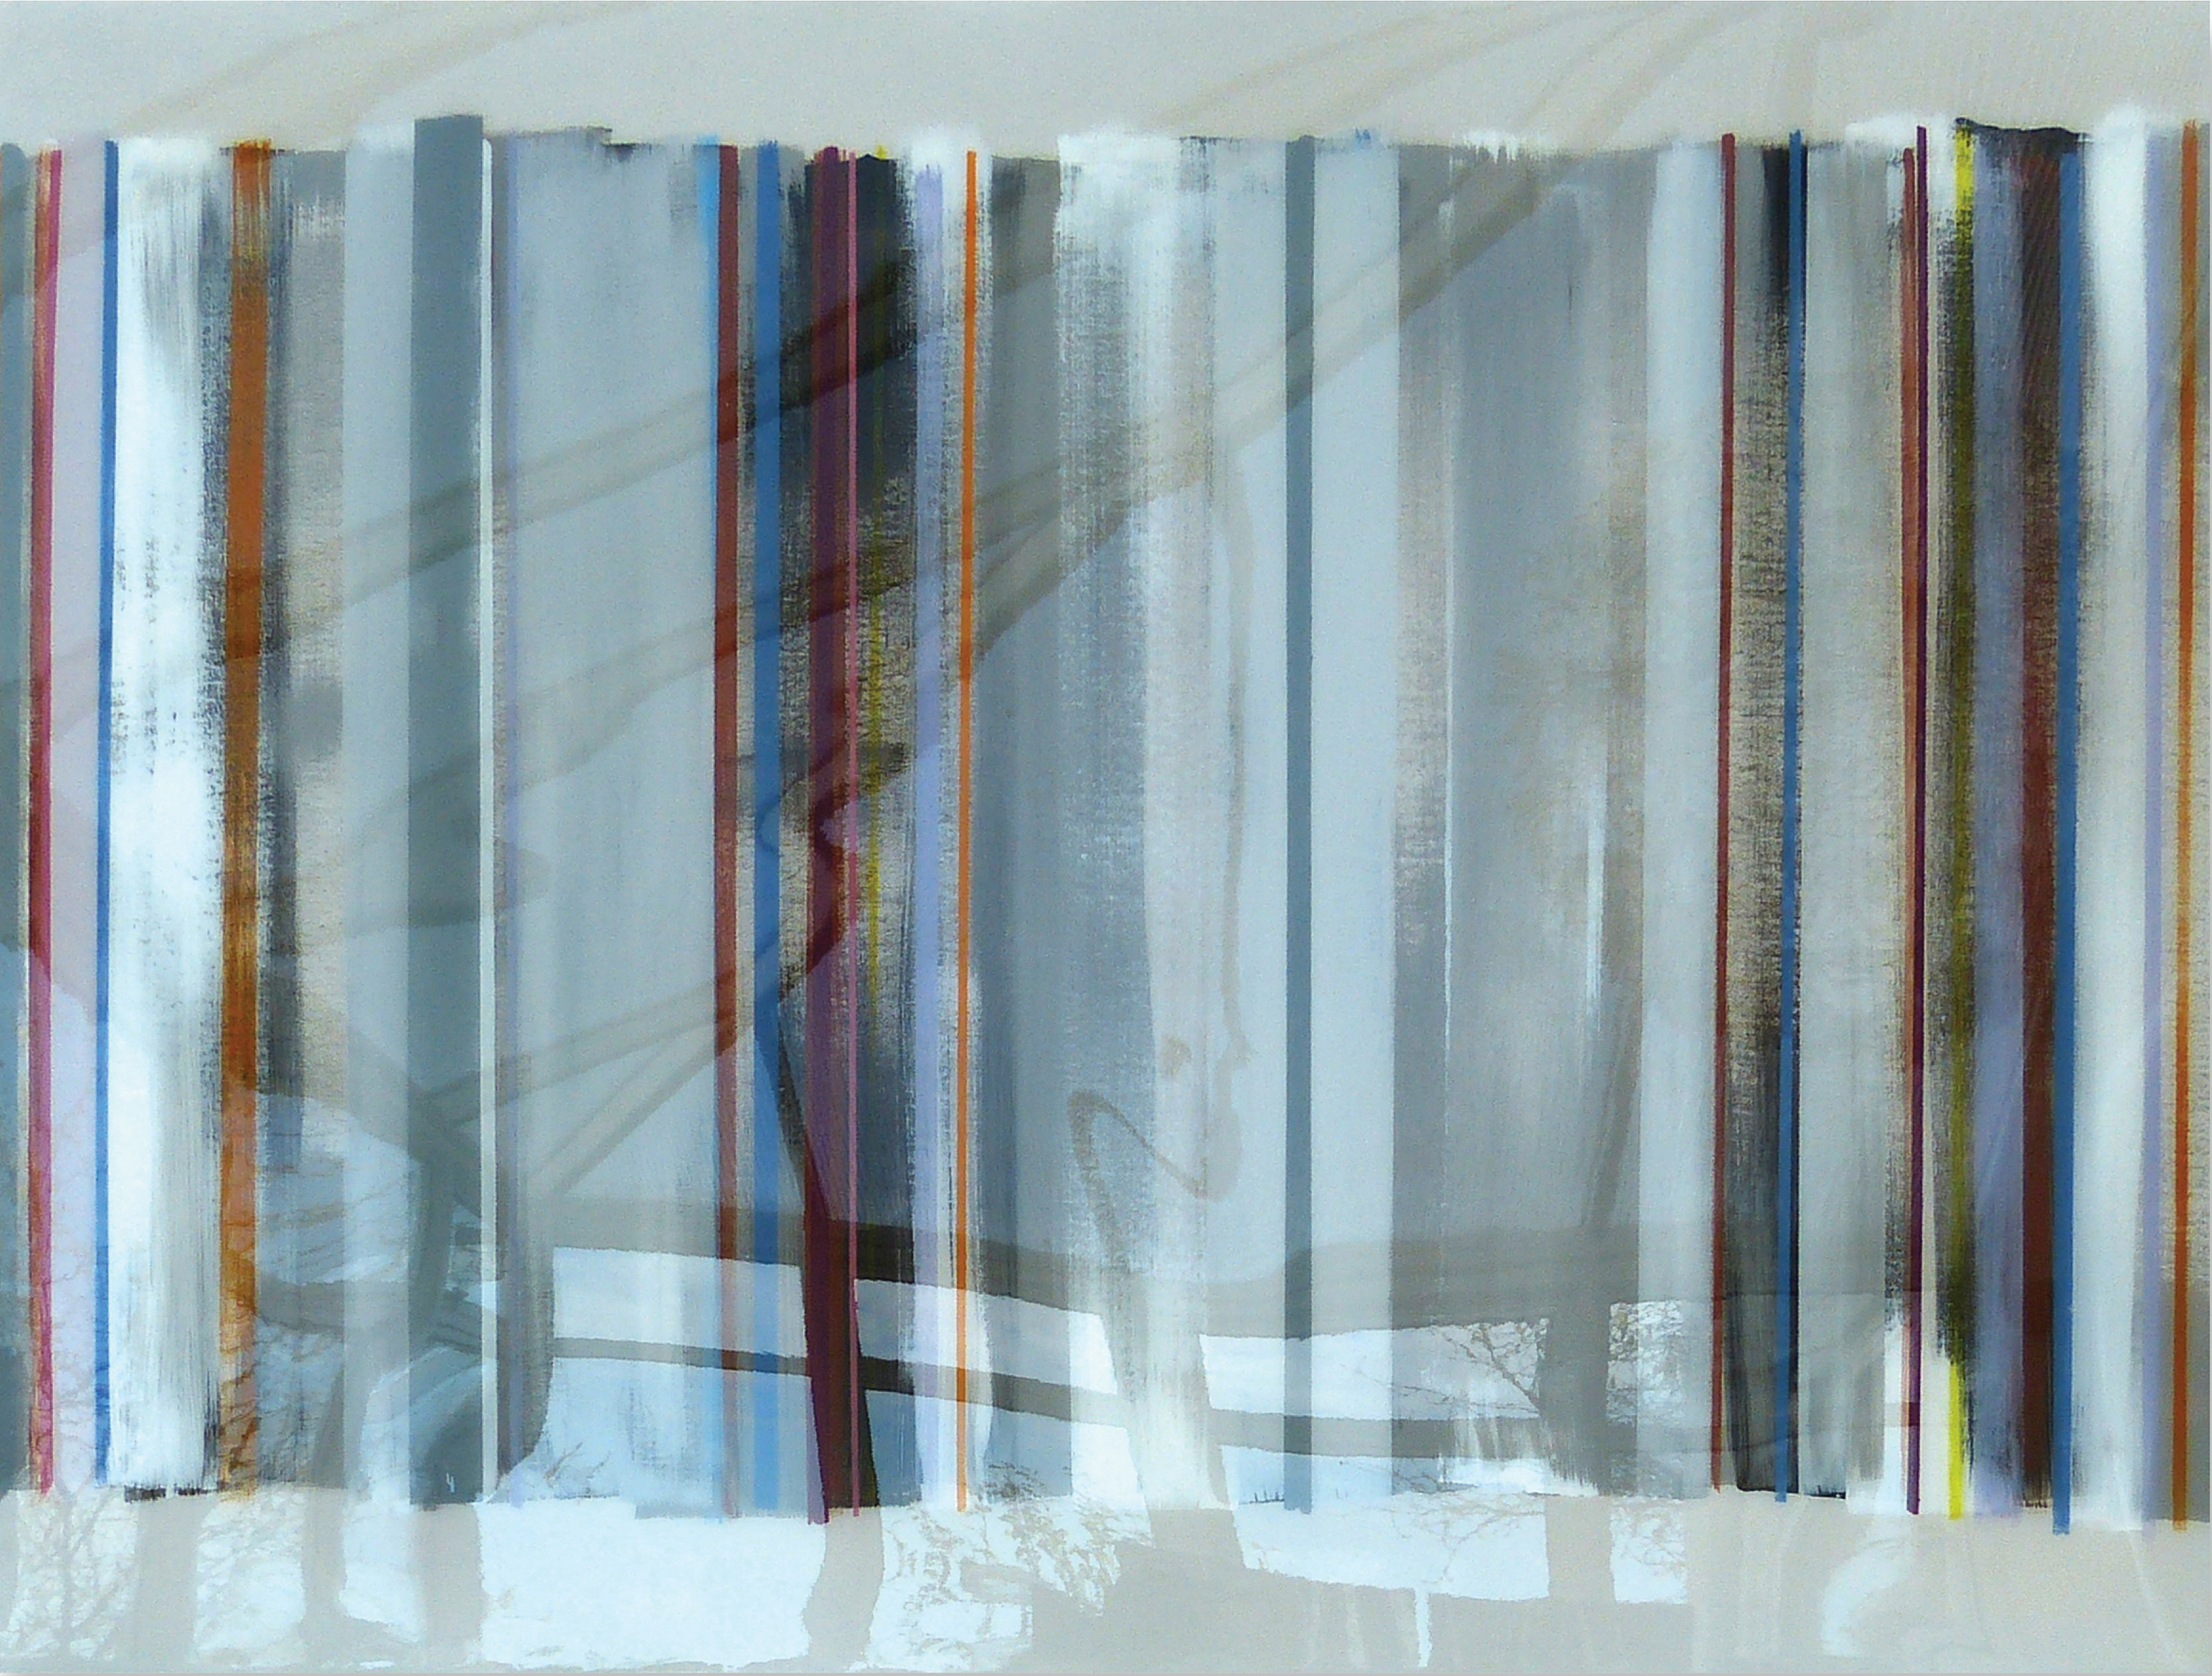 ALLORA 102x76cm | mixed media on canvas with high gloss epoxy resin | £1600.00 | SOLD